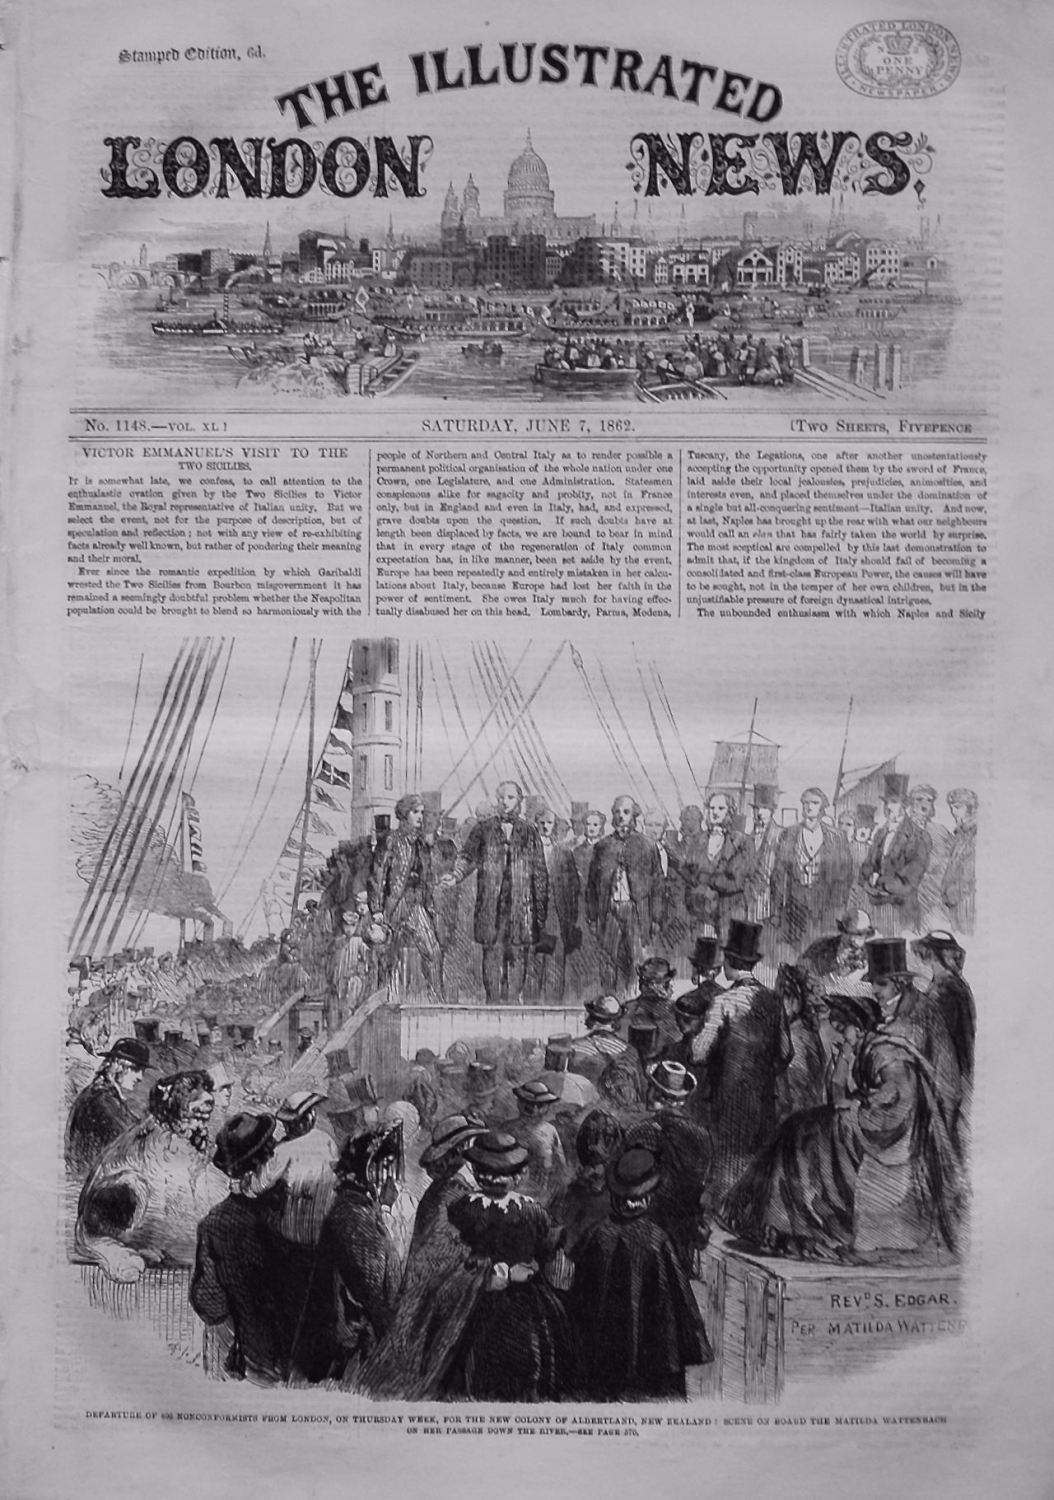 Illustrated London News, June 7th 1862.